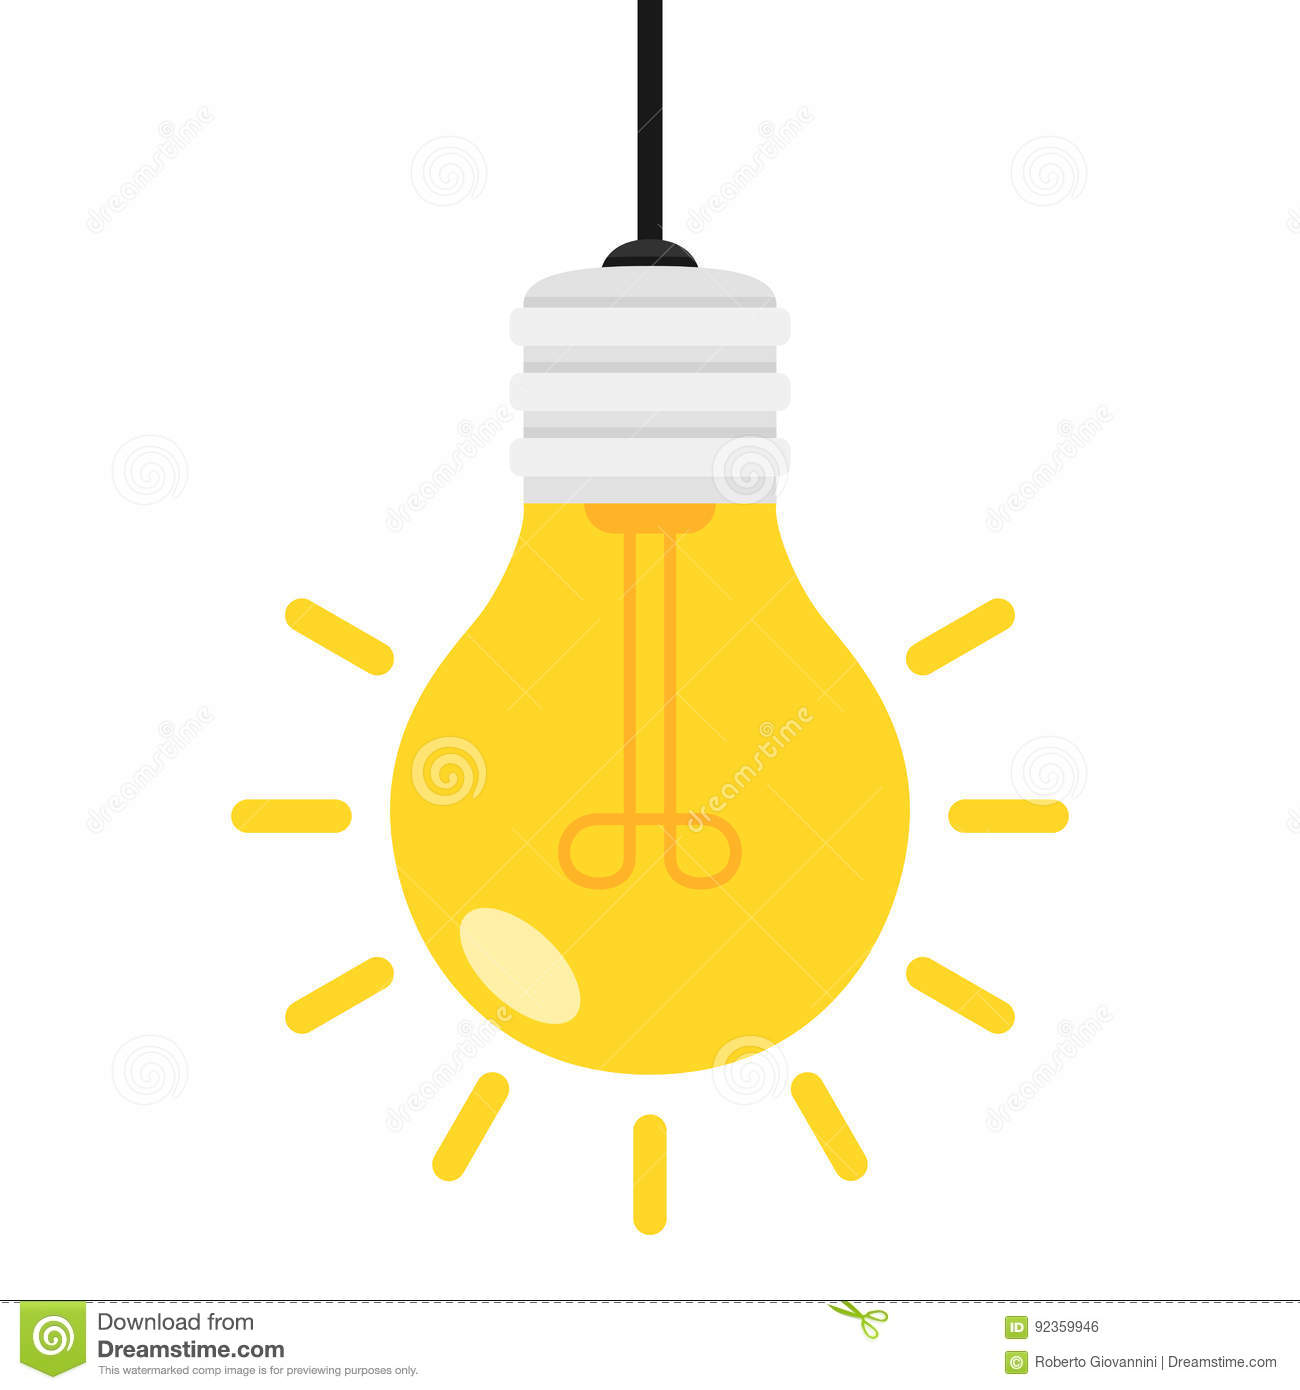 Bright Light Bulb Flat Icon Isolated on White